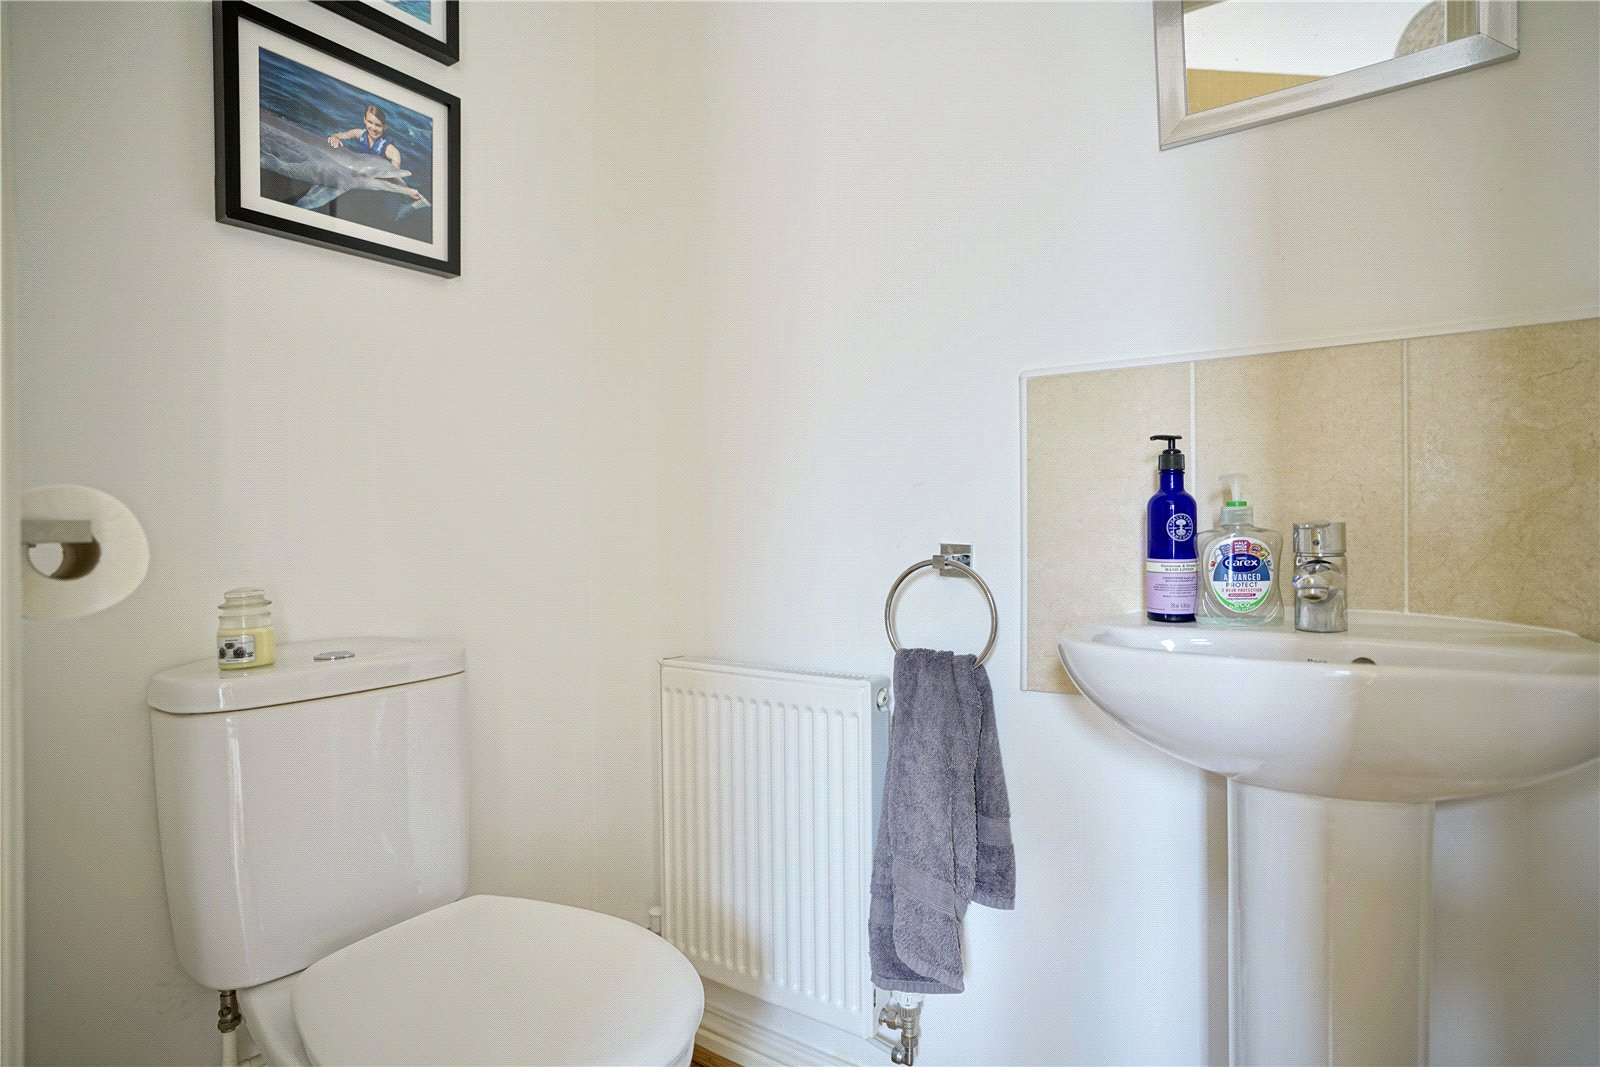 3 bed house for sale in St. Ives, PE27 5DL 11